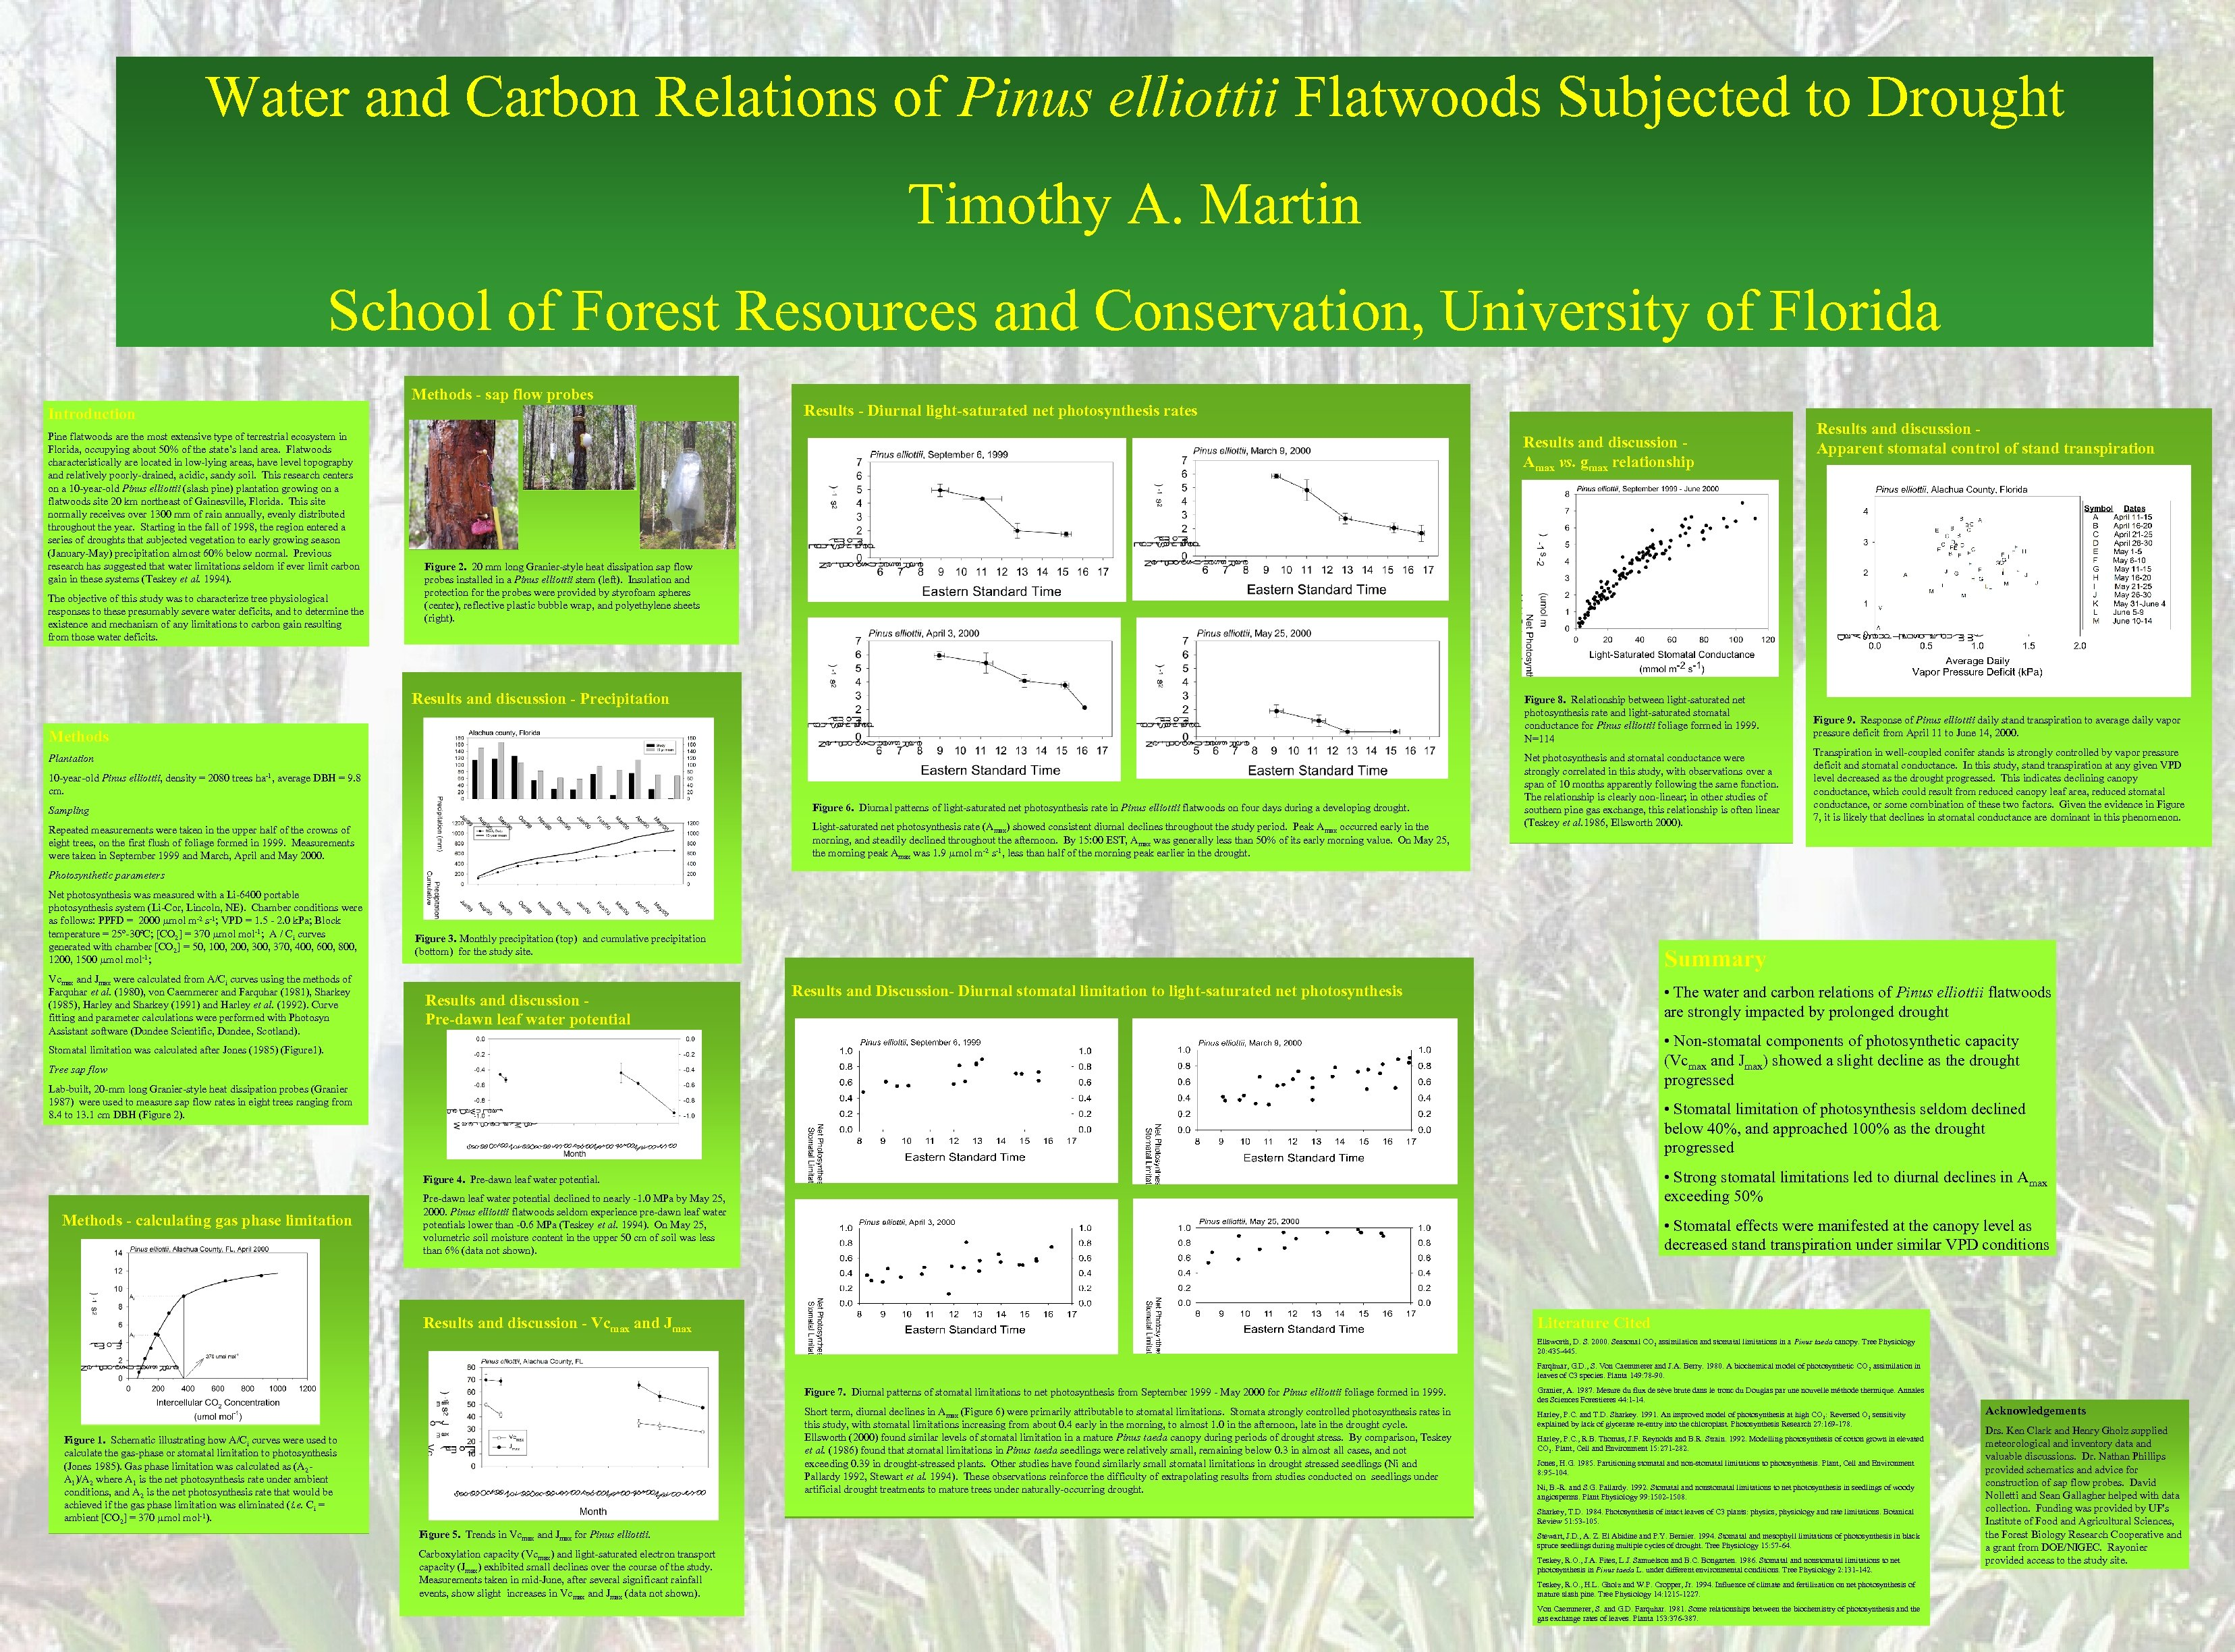 Water and Carbon Relations of Pinus elliottii Flatwoods Subjected to Drought Timothy A. Martin